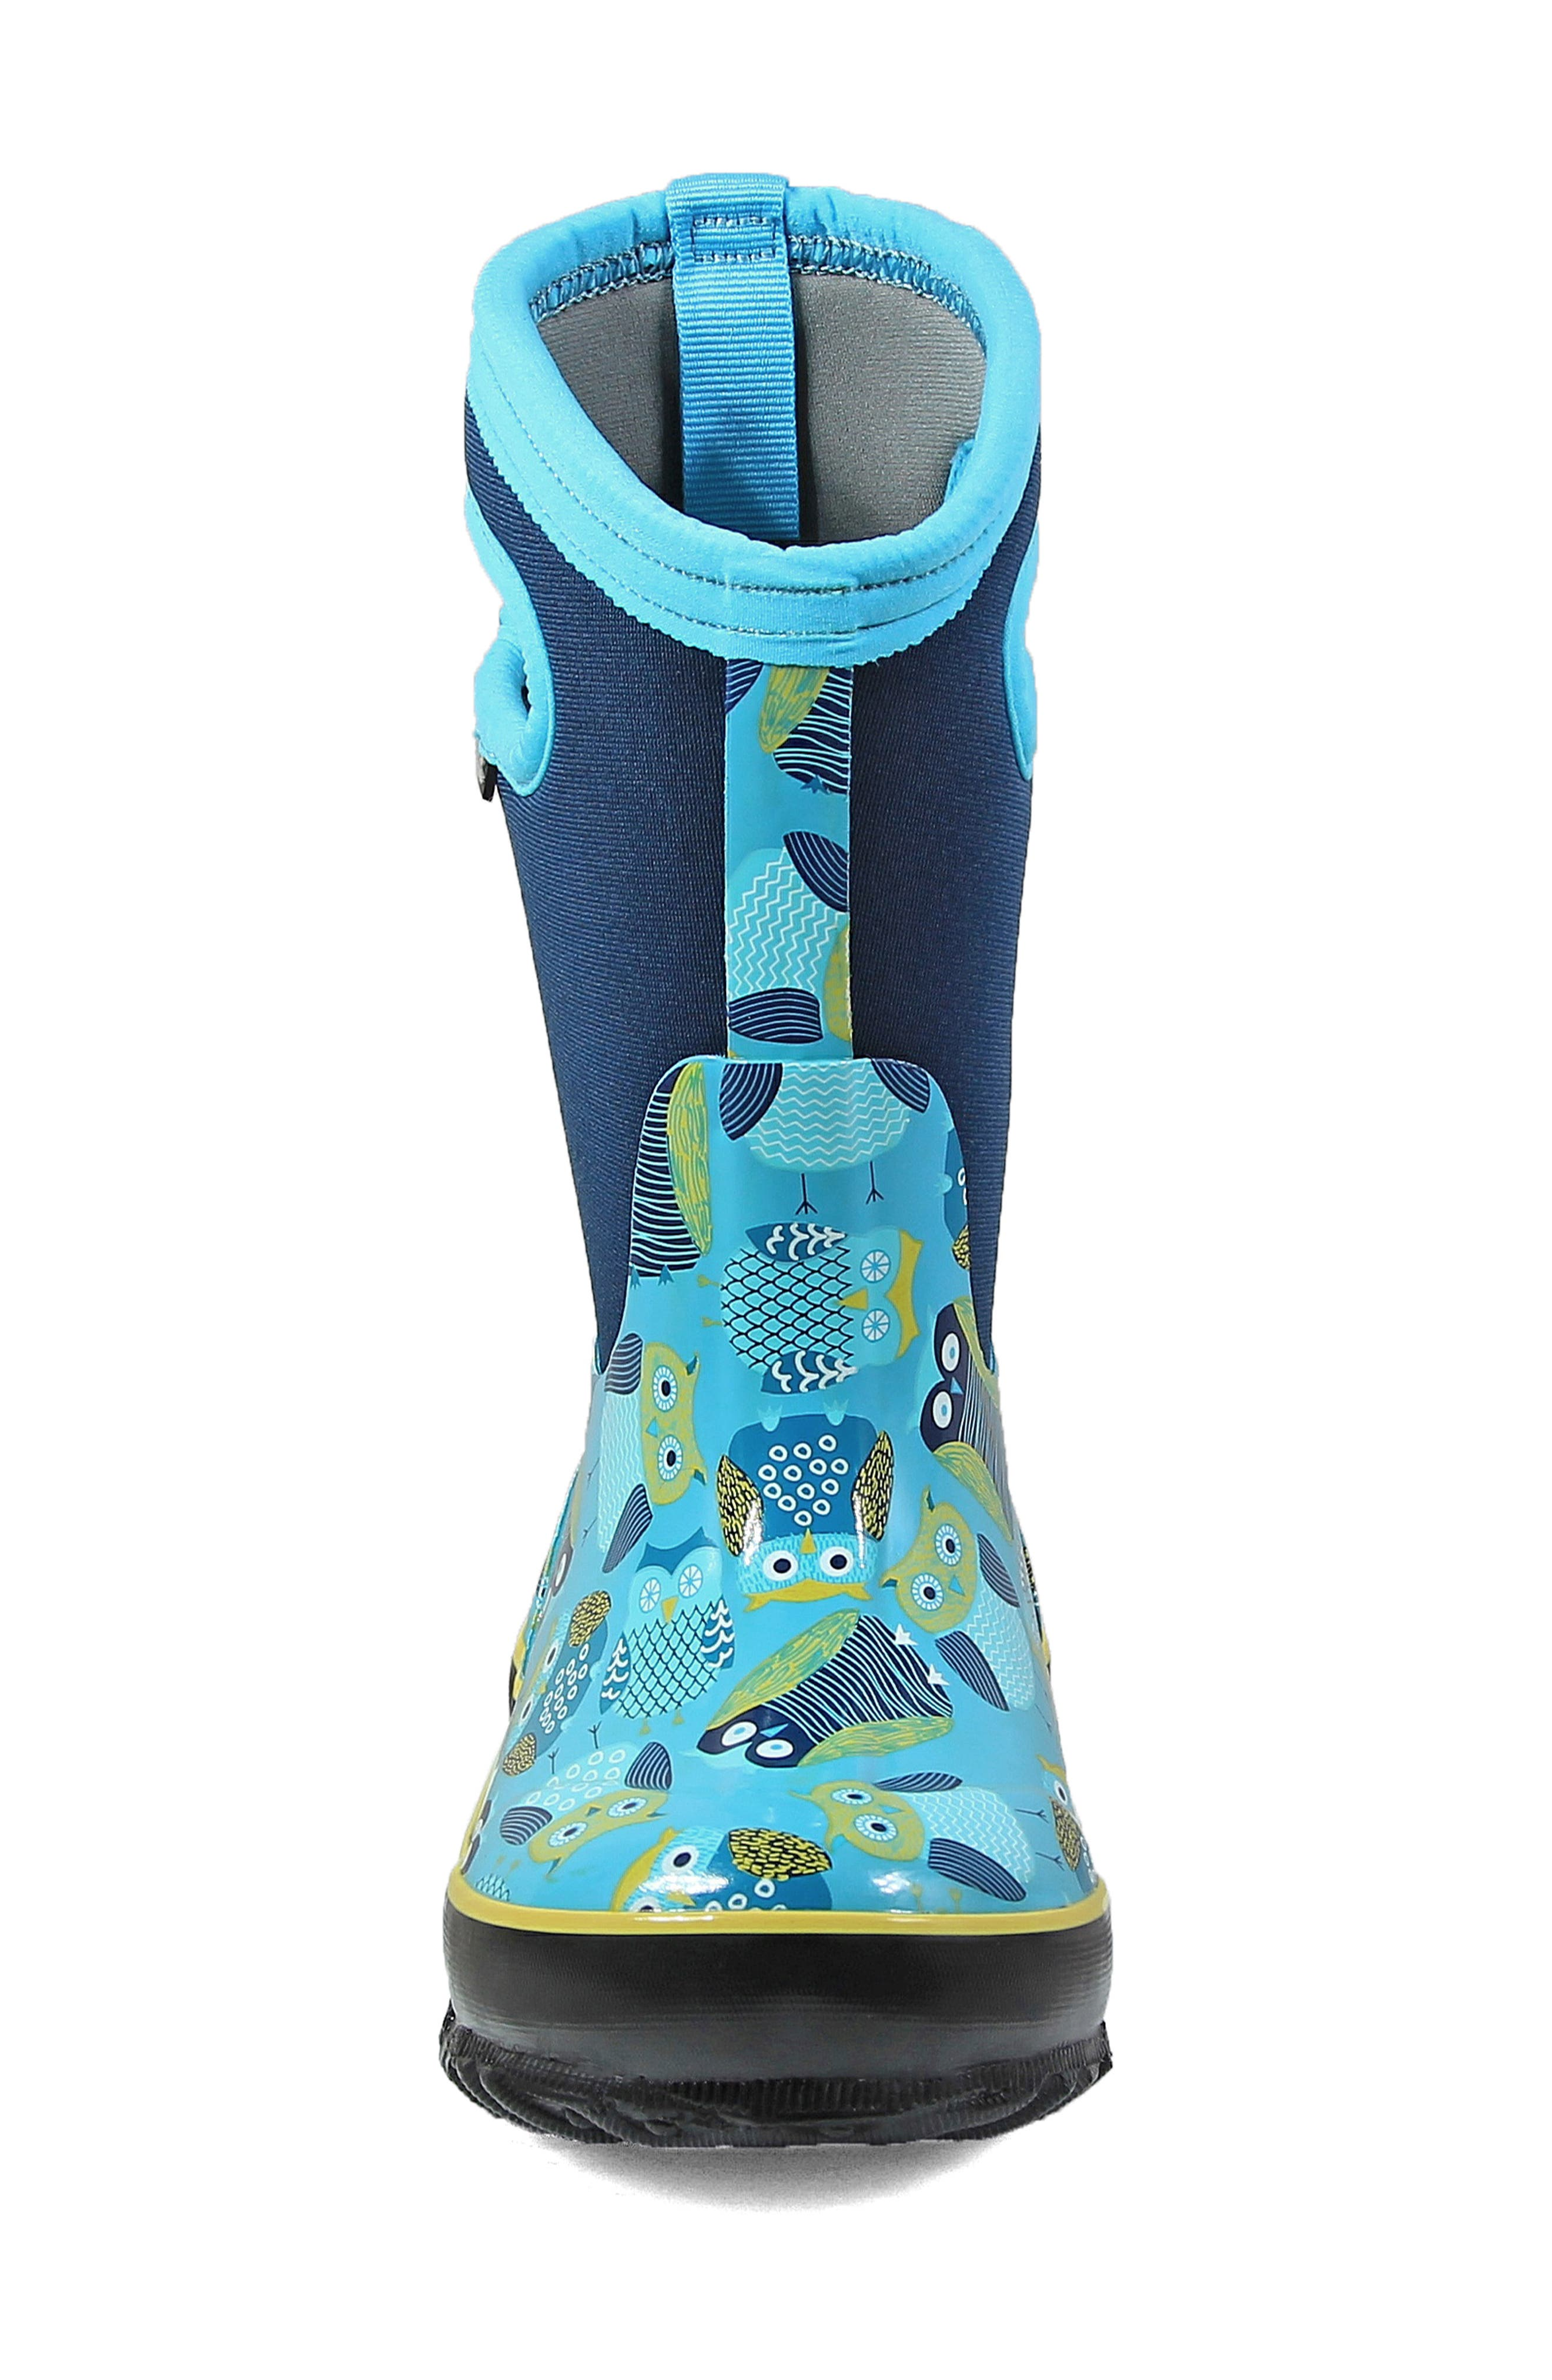 Classic Insulated Waterproof Owl Boot,                             Alternate thumbnail 4, color,                             460